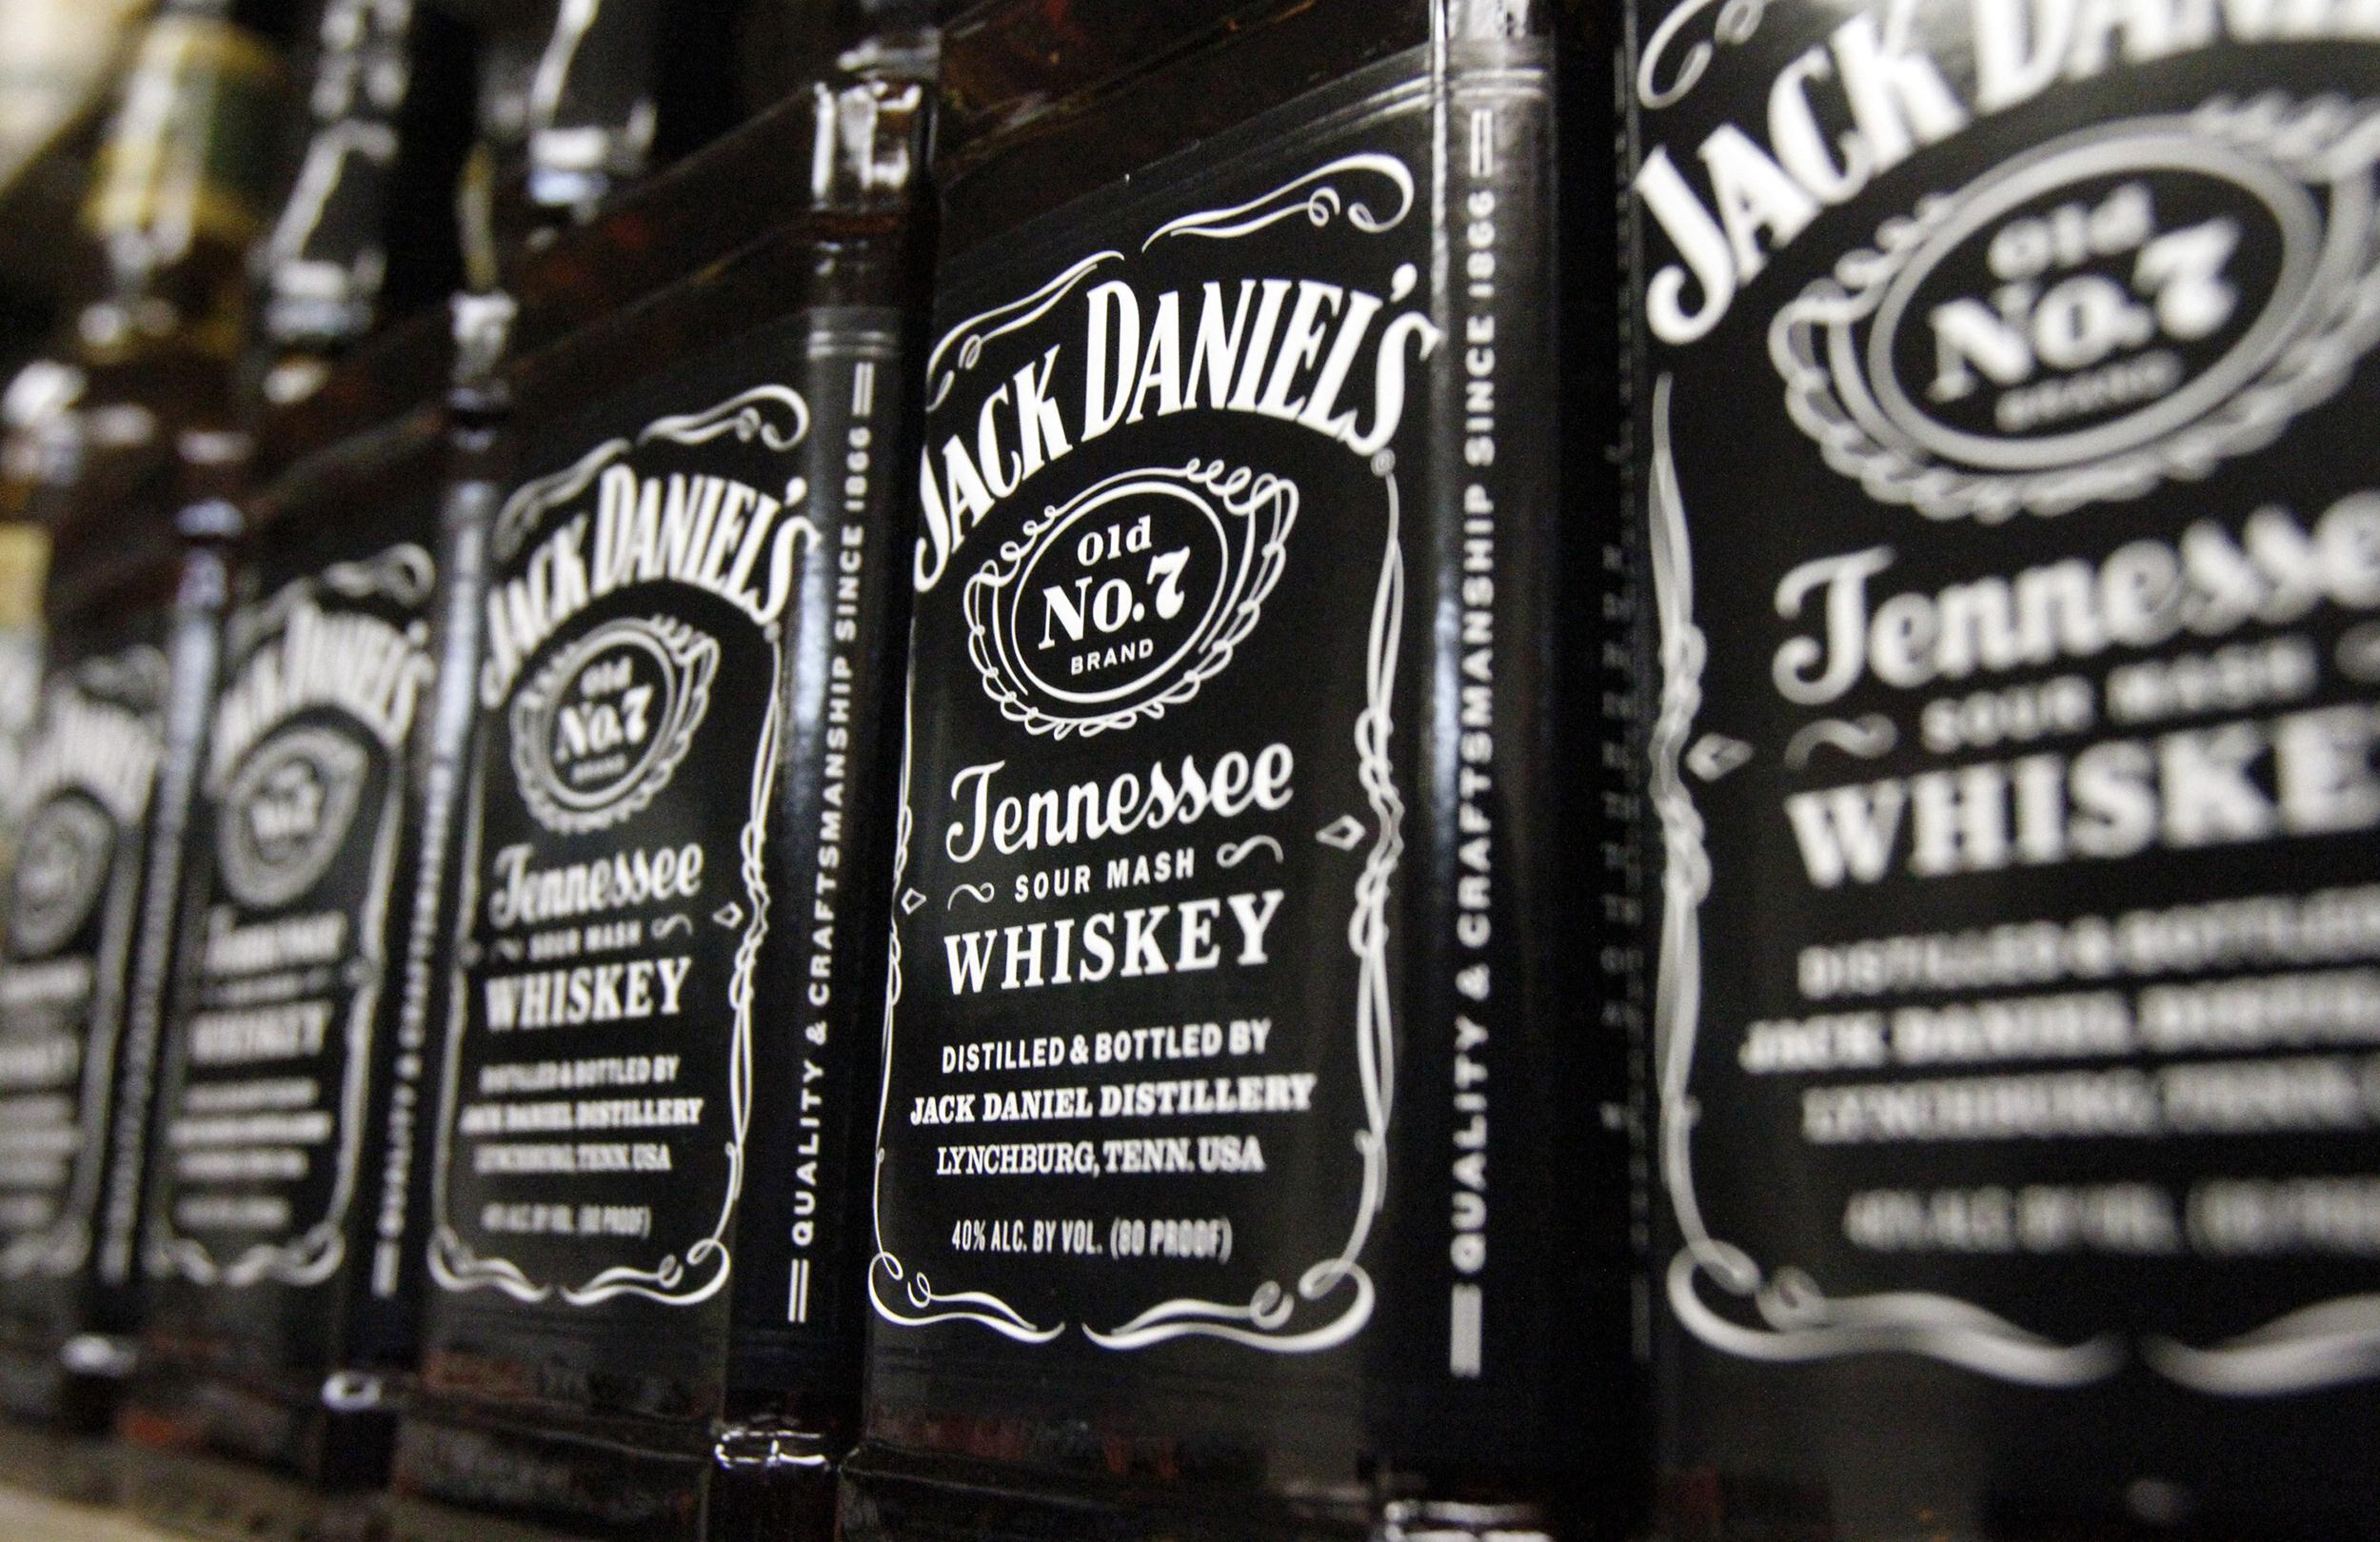 Image: Bottles of Jack Daniel's Tennessee Whiskey, line the shelves of a liquor outlet, in Montpelier, Vt. on Dec. 5, 2011